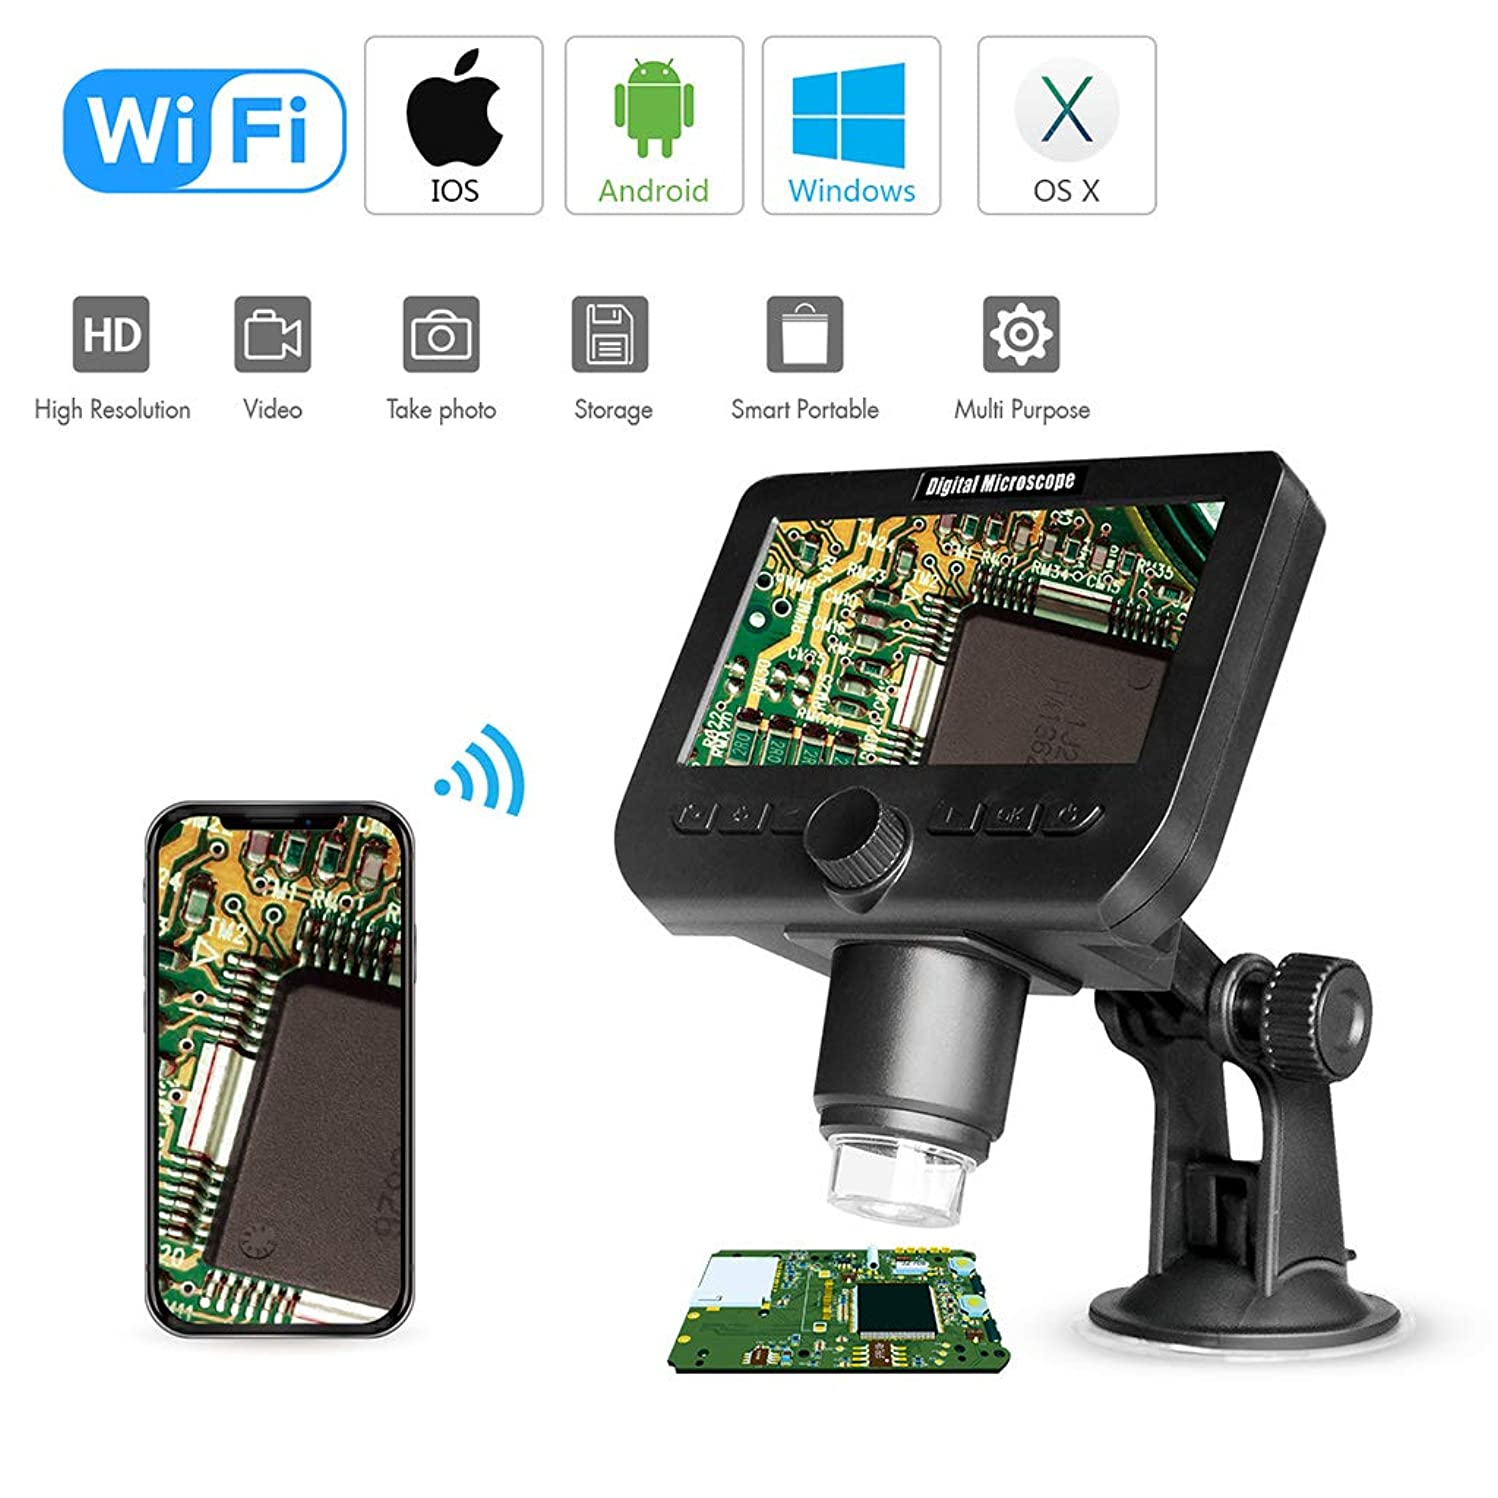 """Yuly 2MP Wireless WiFi Microscope 4.3"""" HD Screen 8 LED 1080p Camera Magnifier W Suction Cup Base for iOS Android Windows Mac OS X(1000X)"""